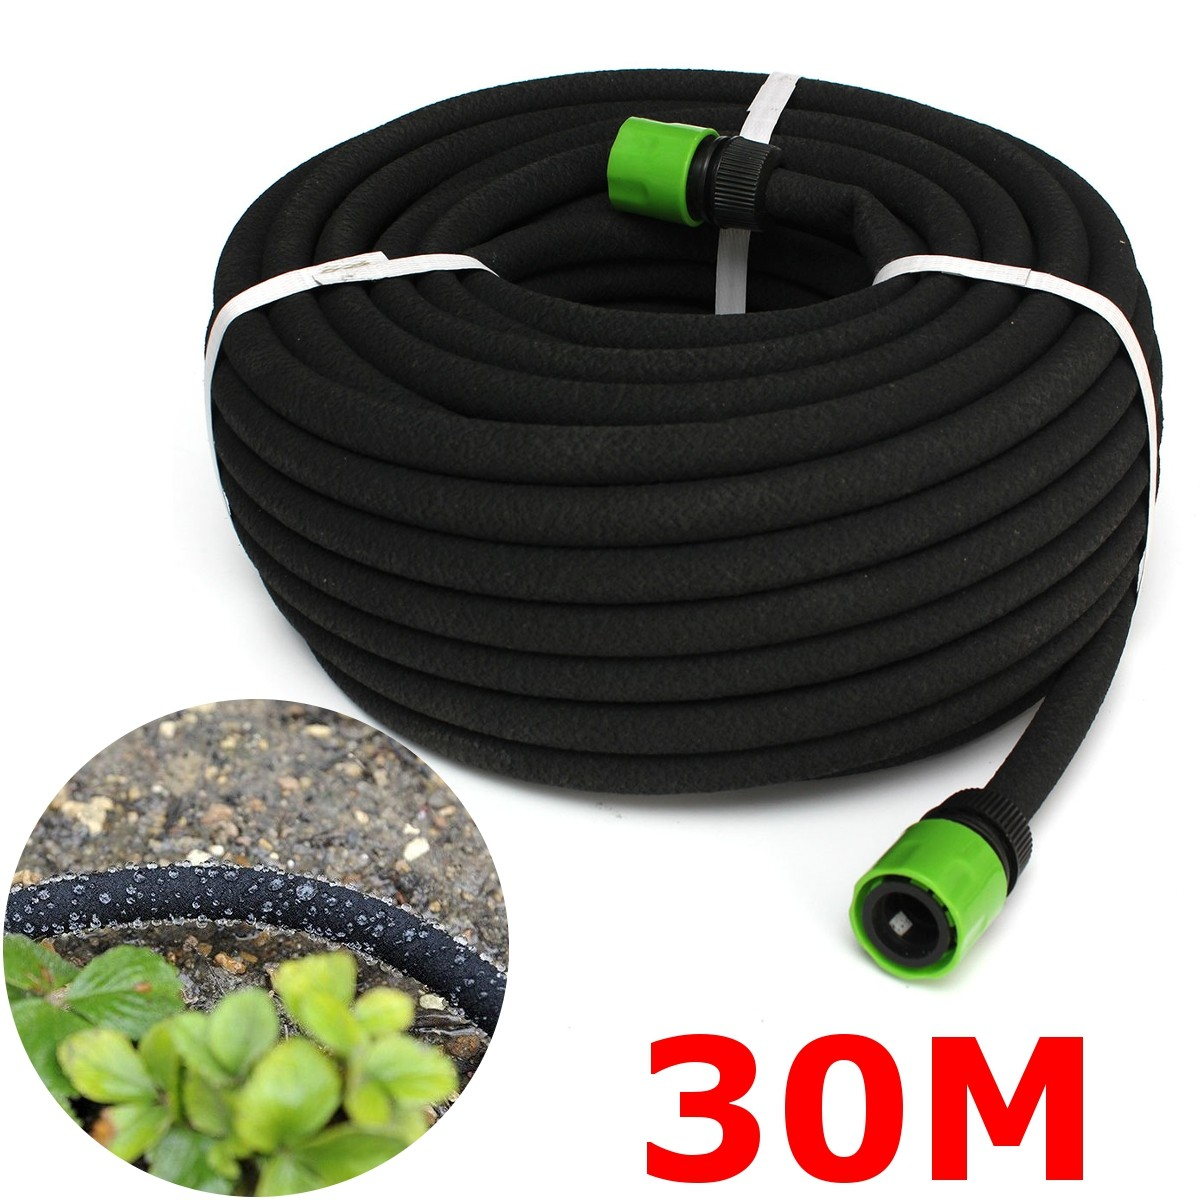 Us 26 09 42 Off 30m Black Porous Irrigation Soaker Hose Watering Dripper Pipe Lawn Garden Tool Equipment In Hoses Reels From Home